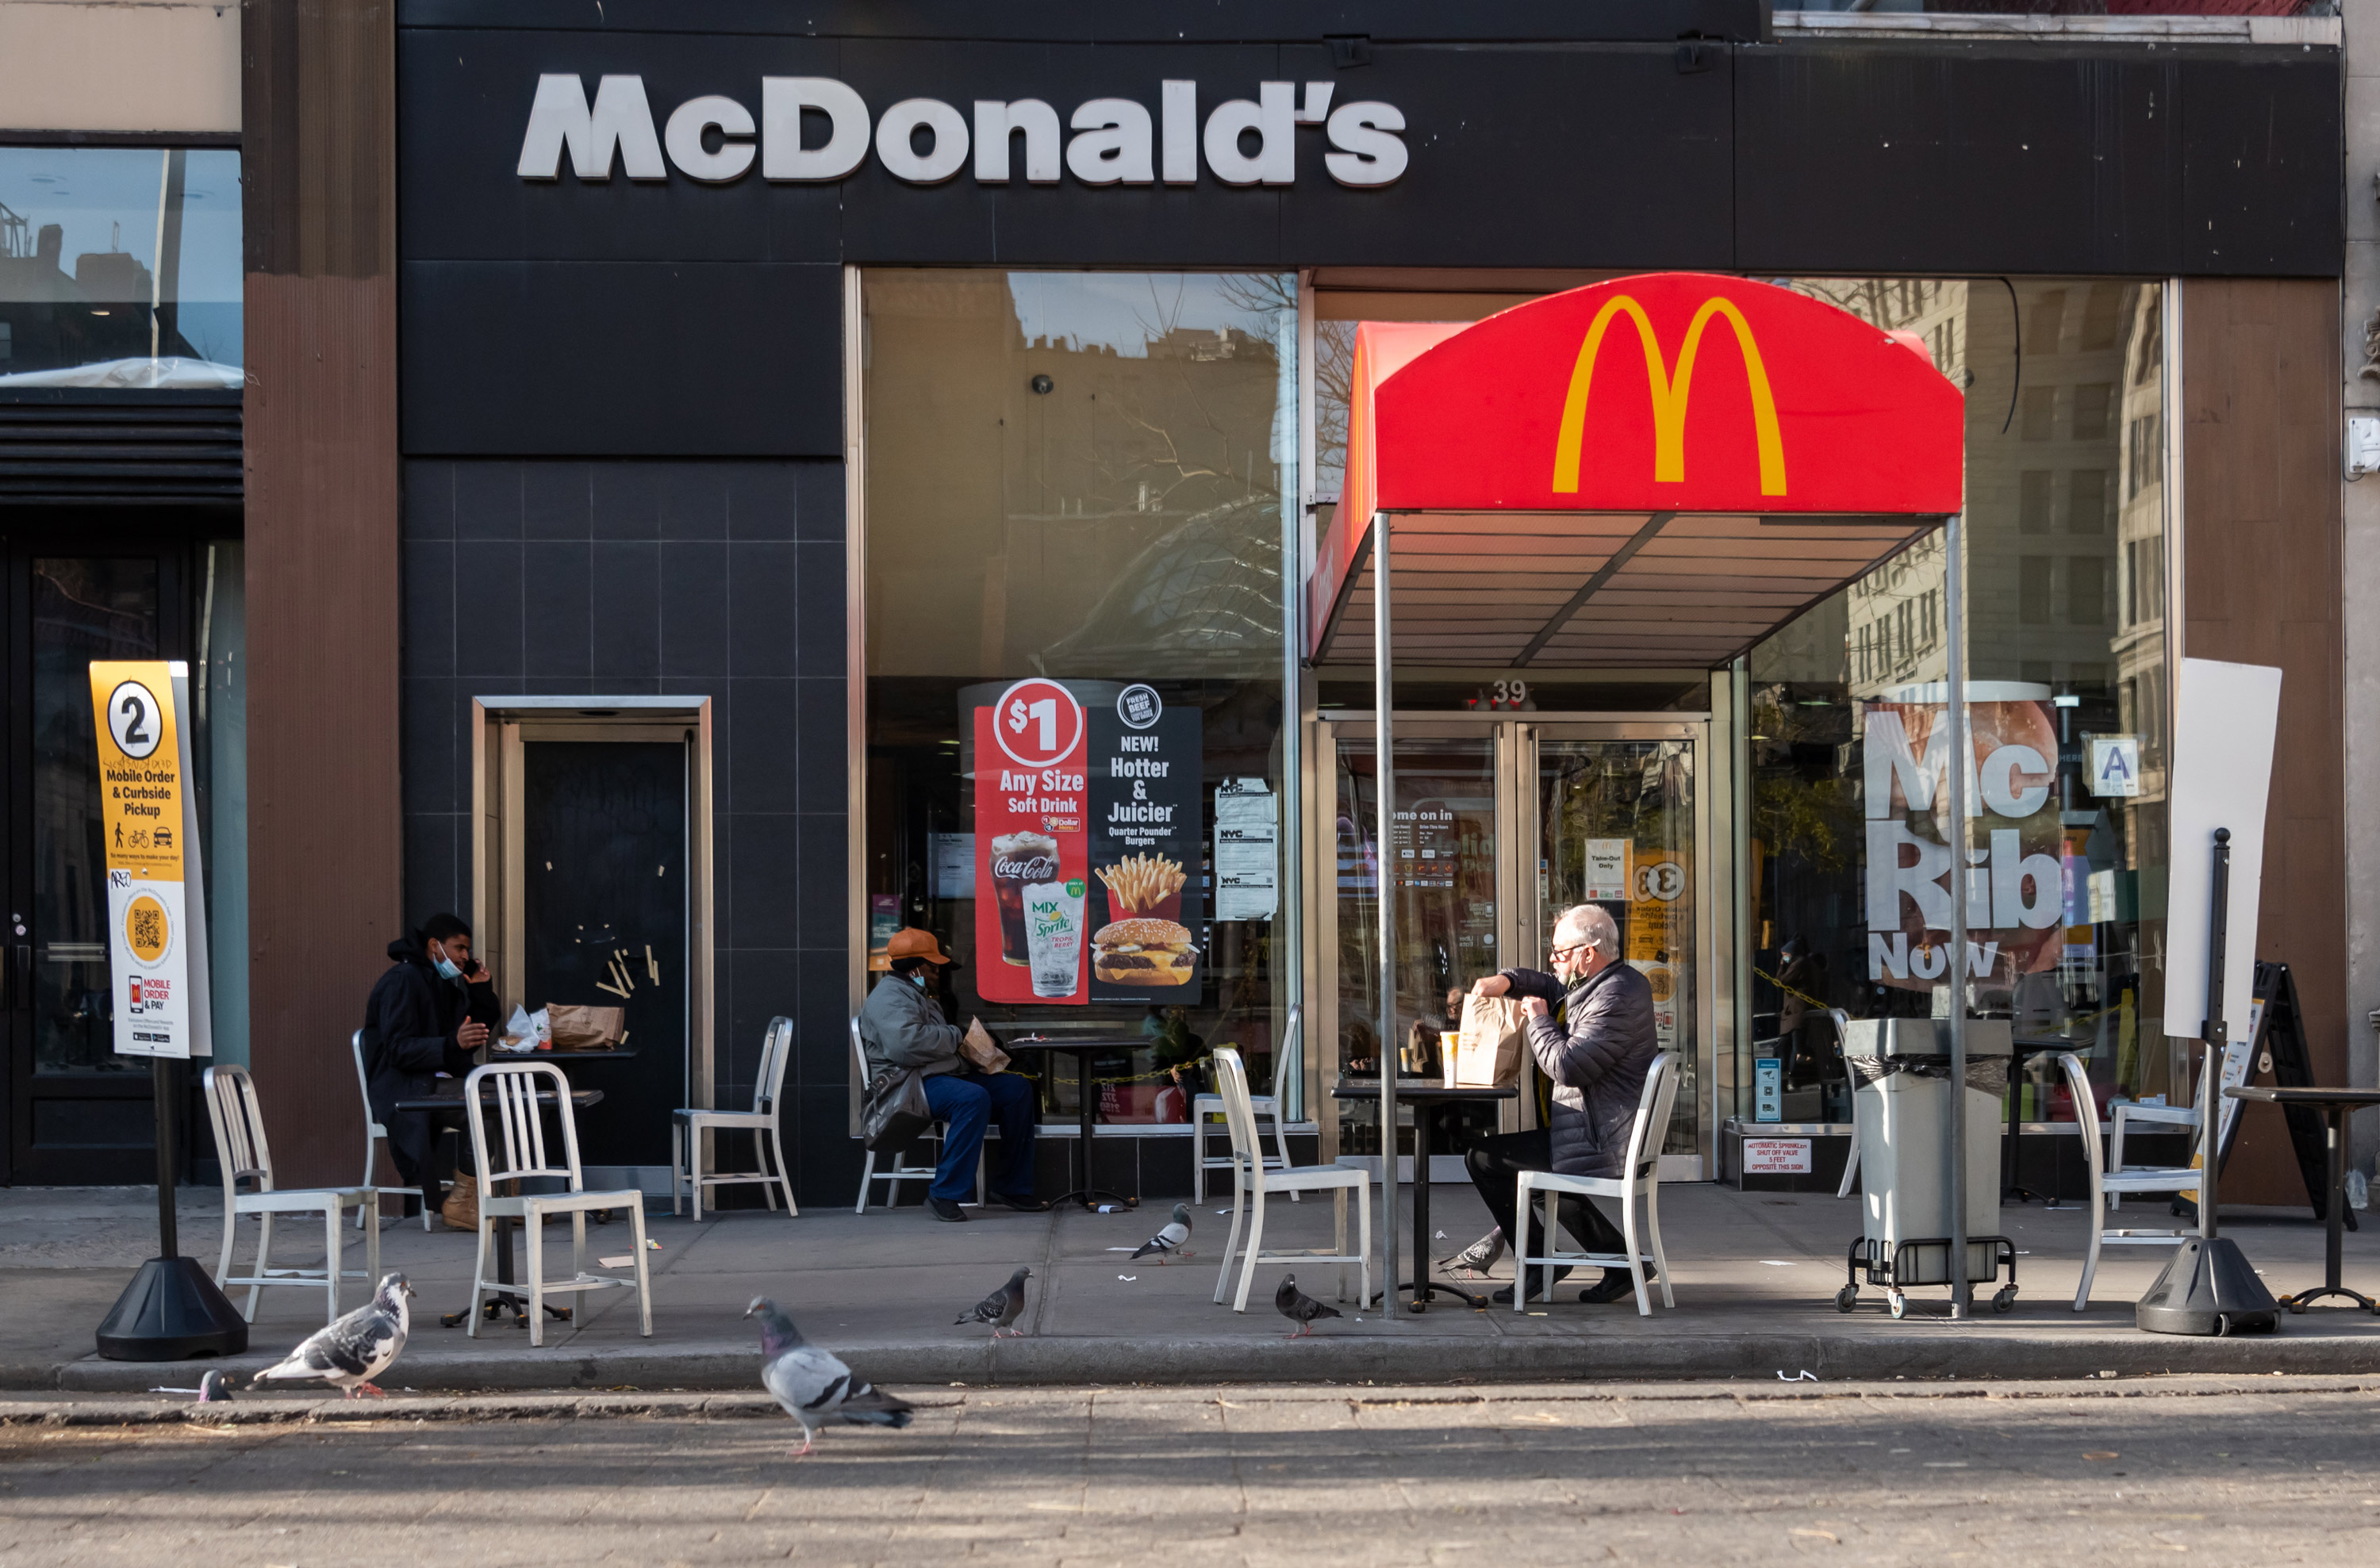 McDonald's finally announces when its new loyalty program will launch